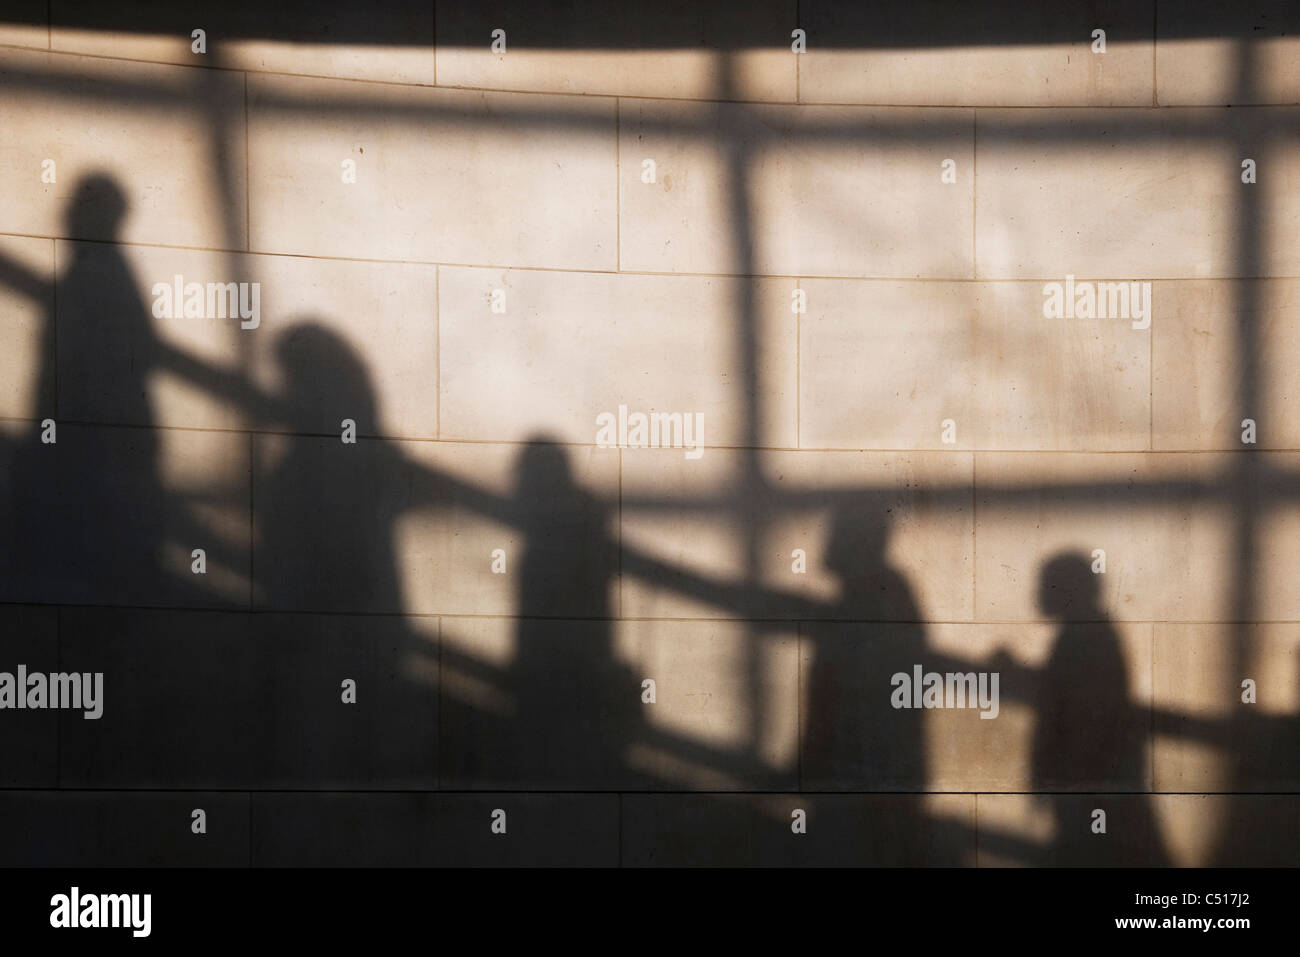 Shadow on wall of people riding escalator - Stock Image